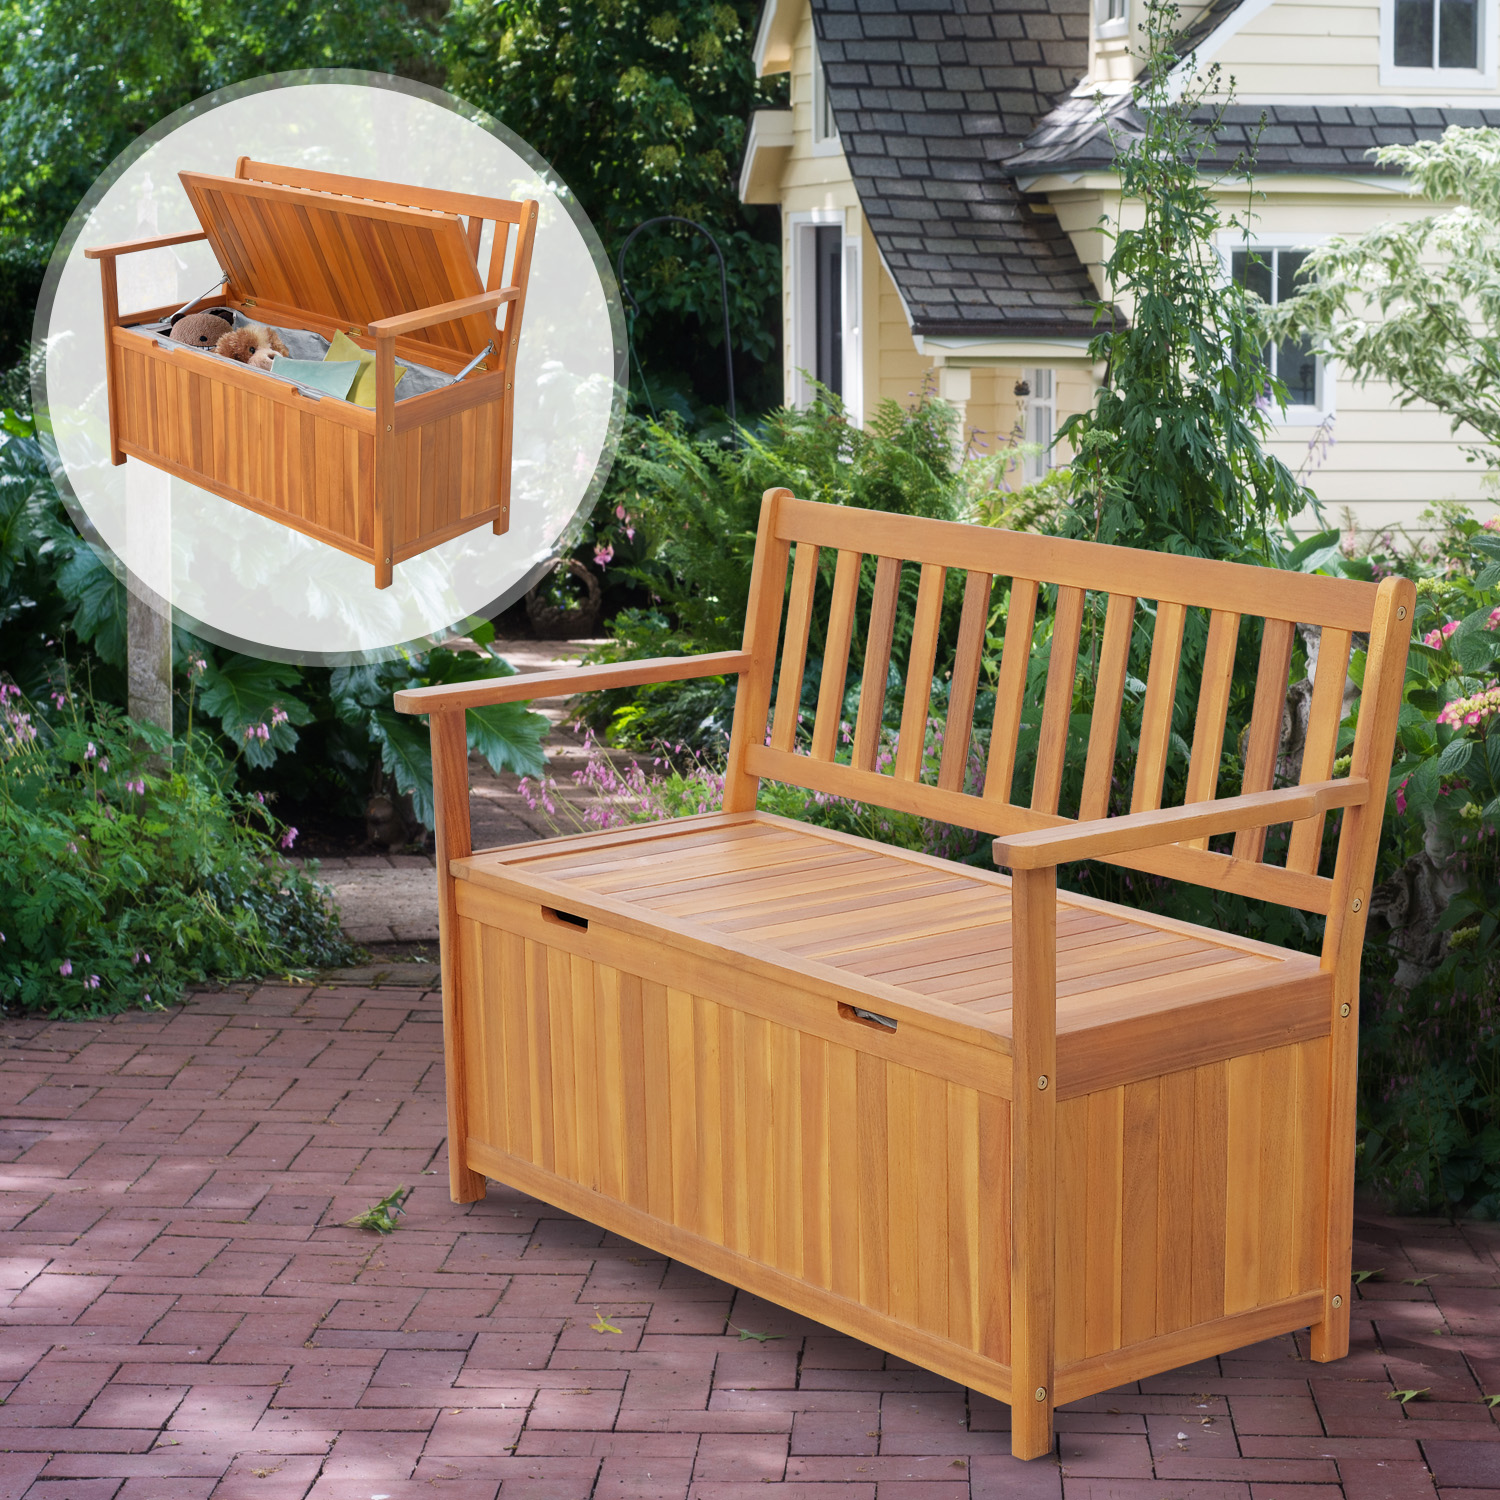 47 wooden outdoor storage bench patio 2 person chair seat deck box